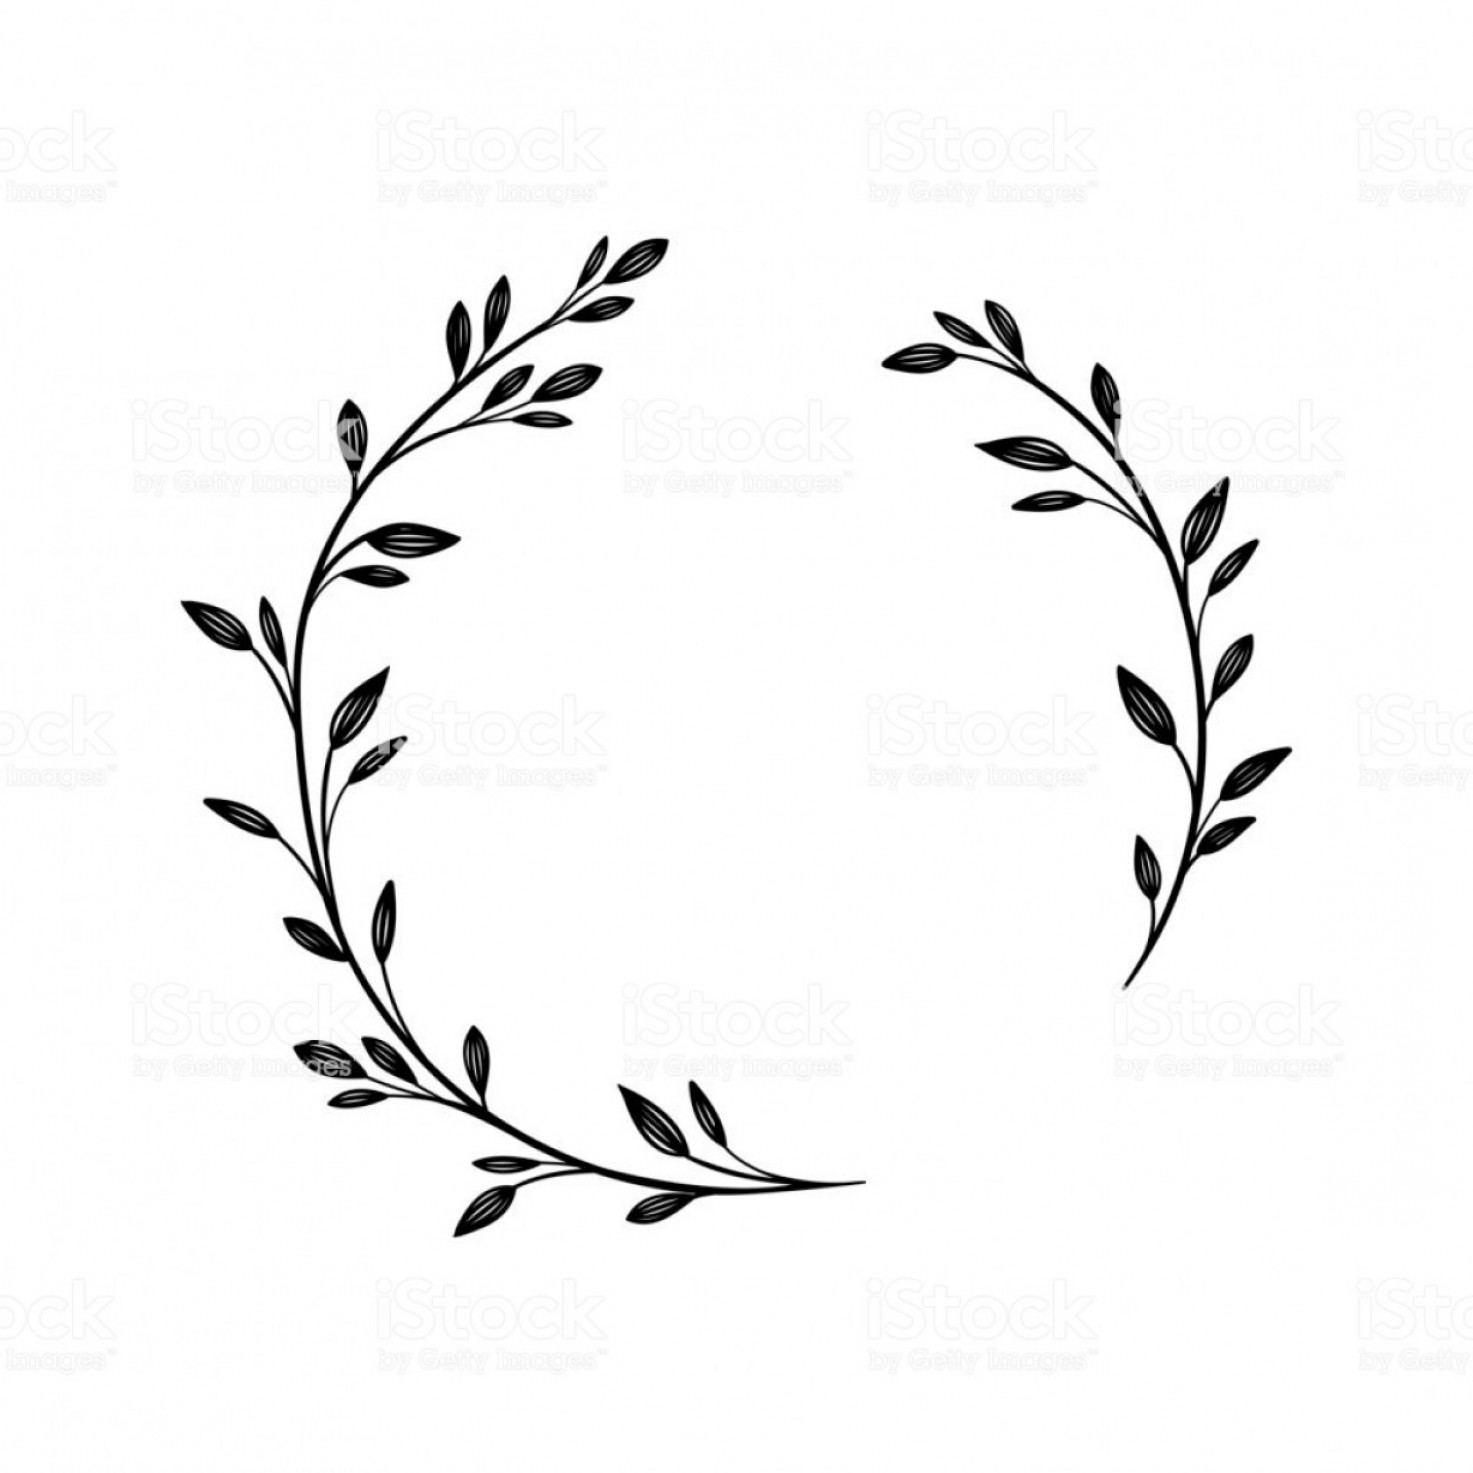 Hand Drawn Laurel Vector: Hand Drawn Vector Frame Floral Wreath For Your Text Decorative Elements For Design Gm